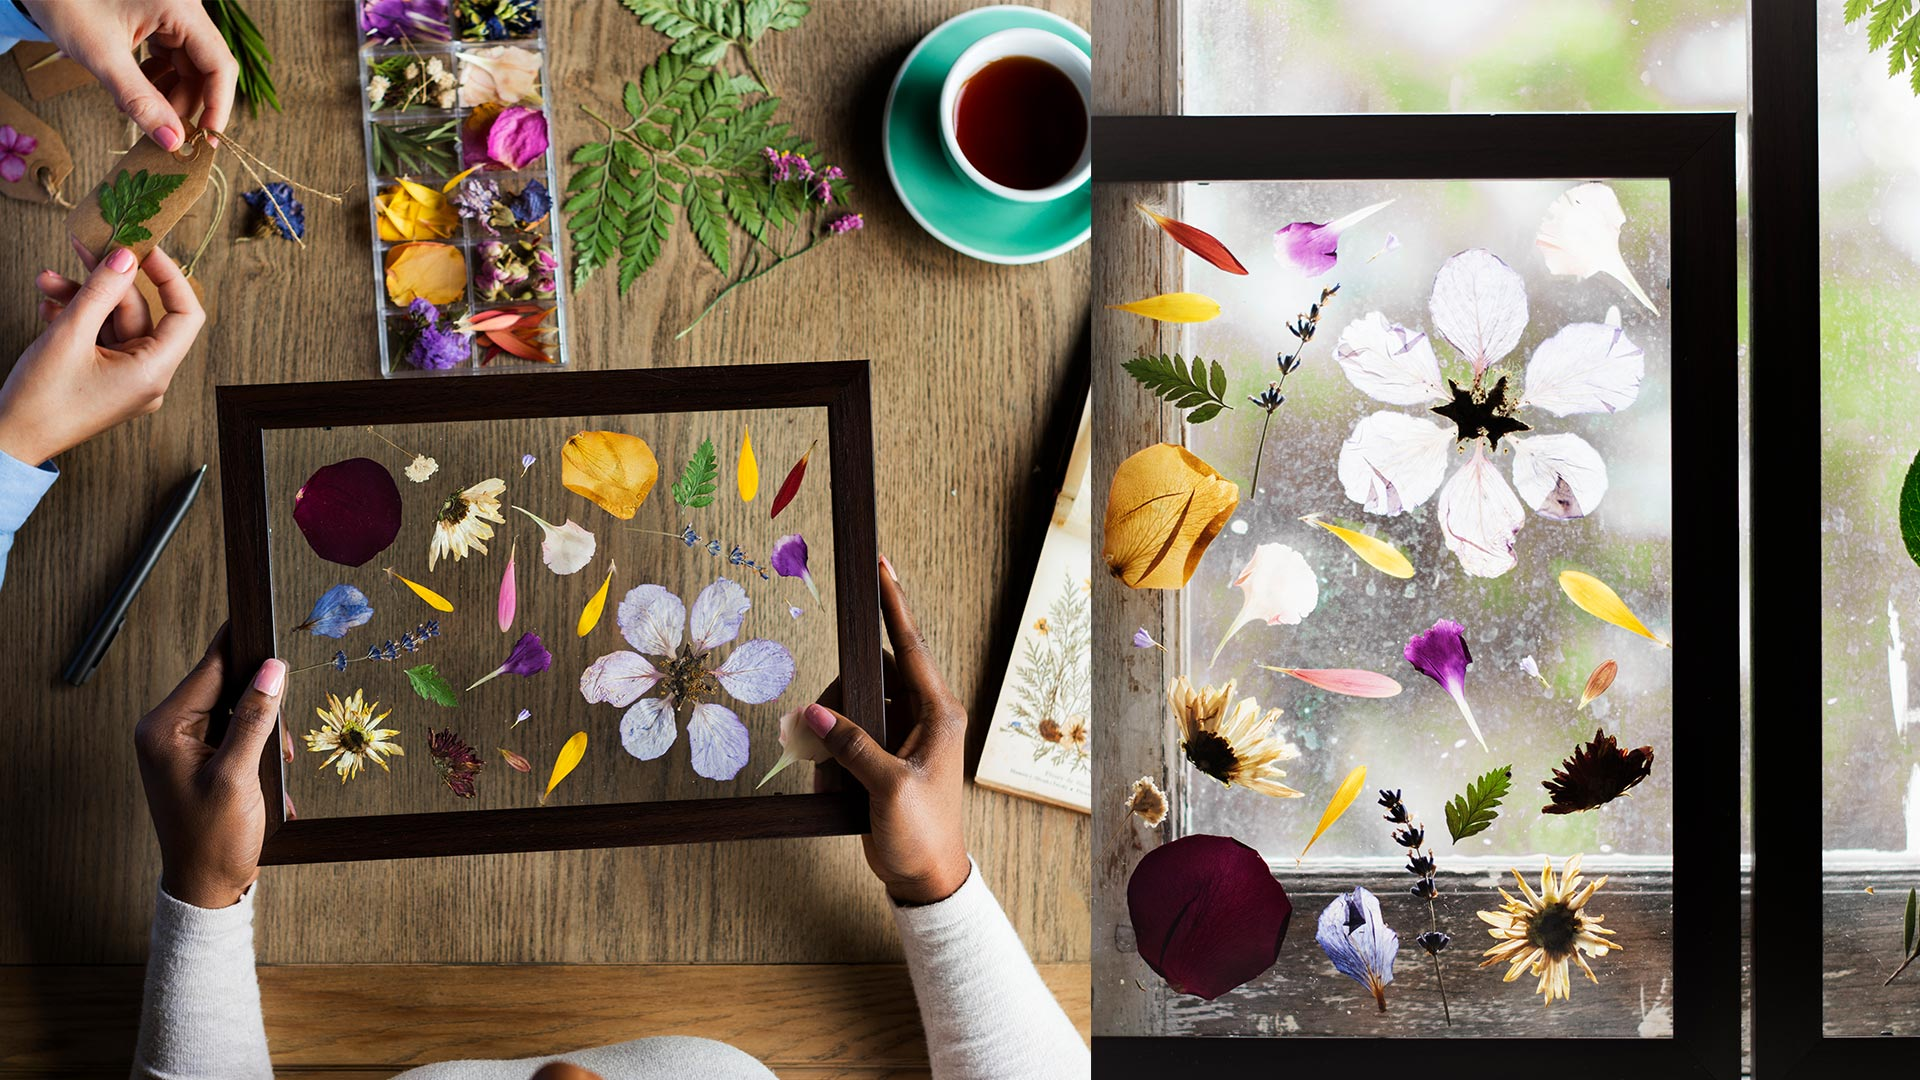 Wall Decor: Framed as pieces of art with flowers